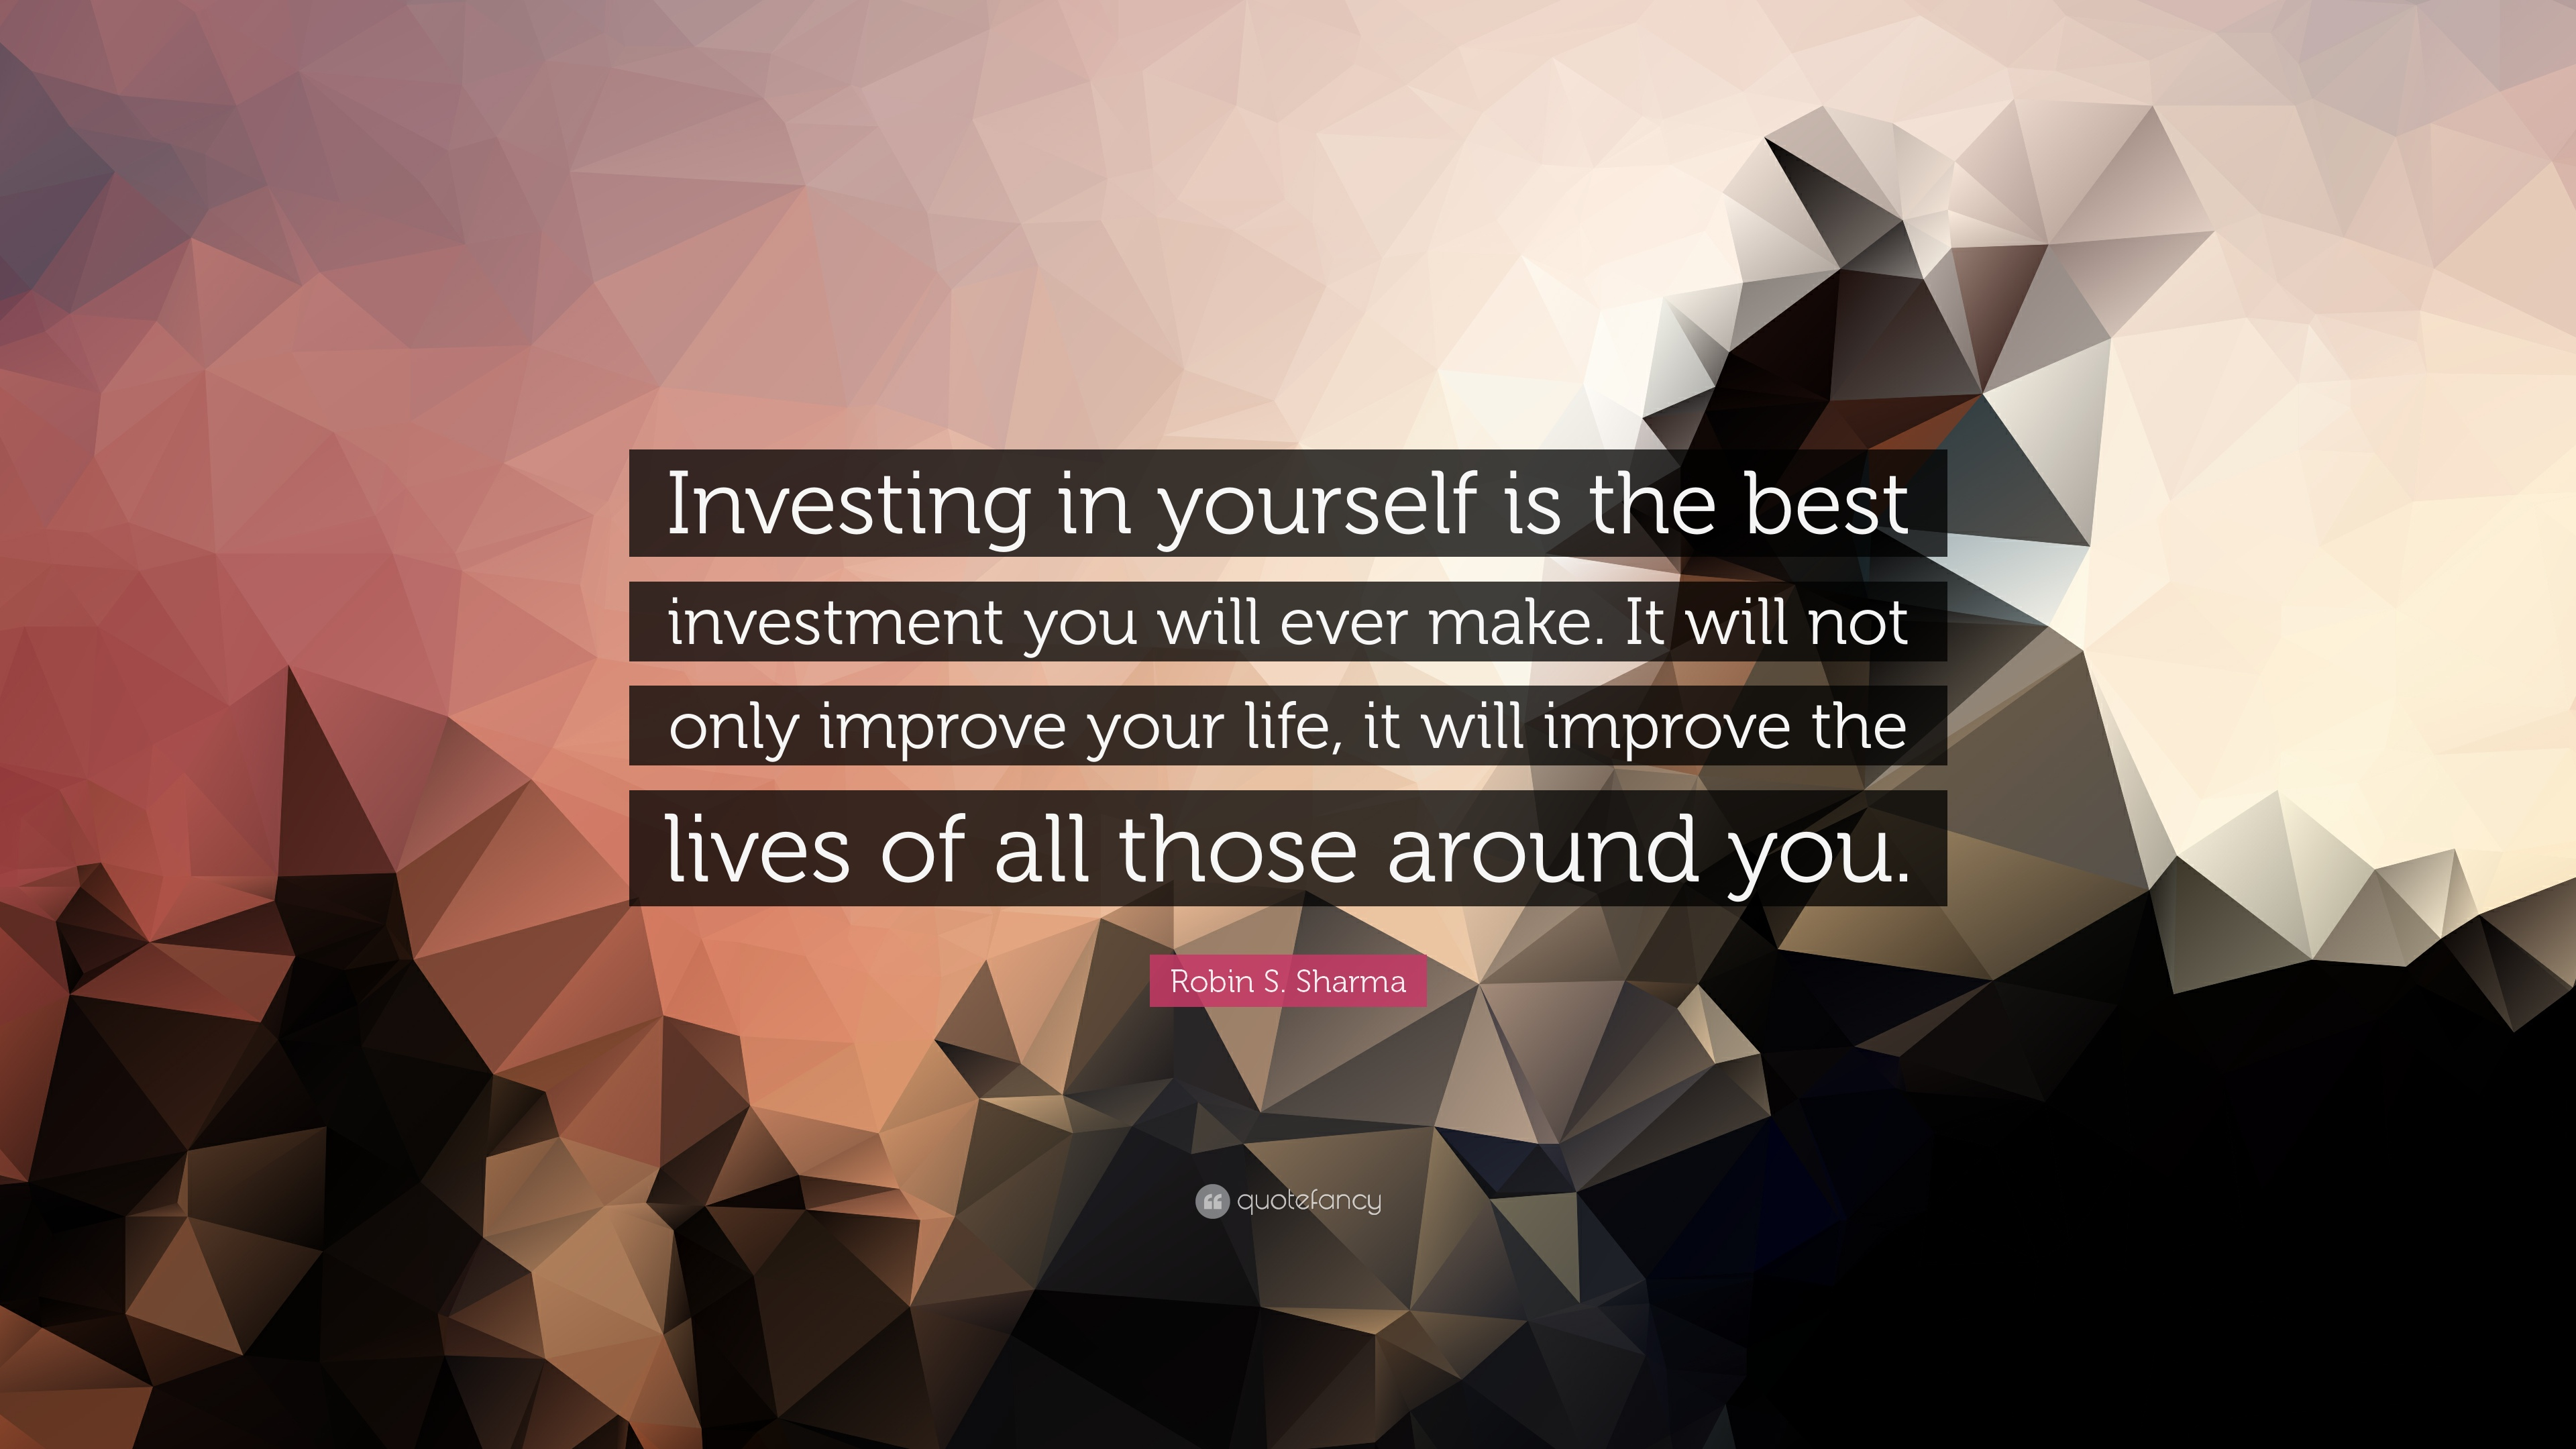 Robin S Sharma Quote Investing In Yourself Is The Best Investment